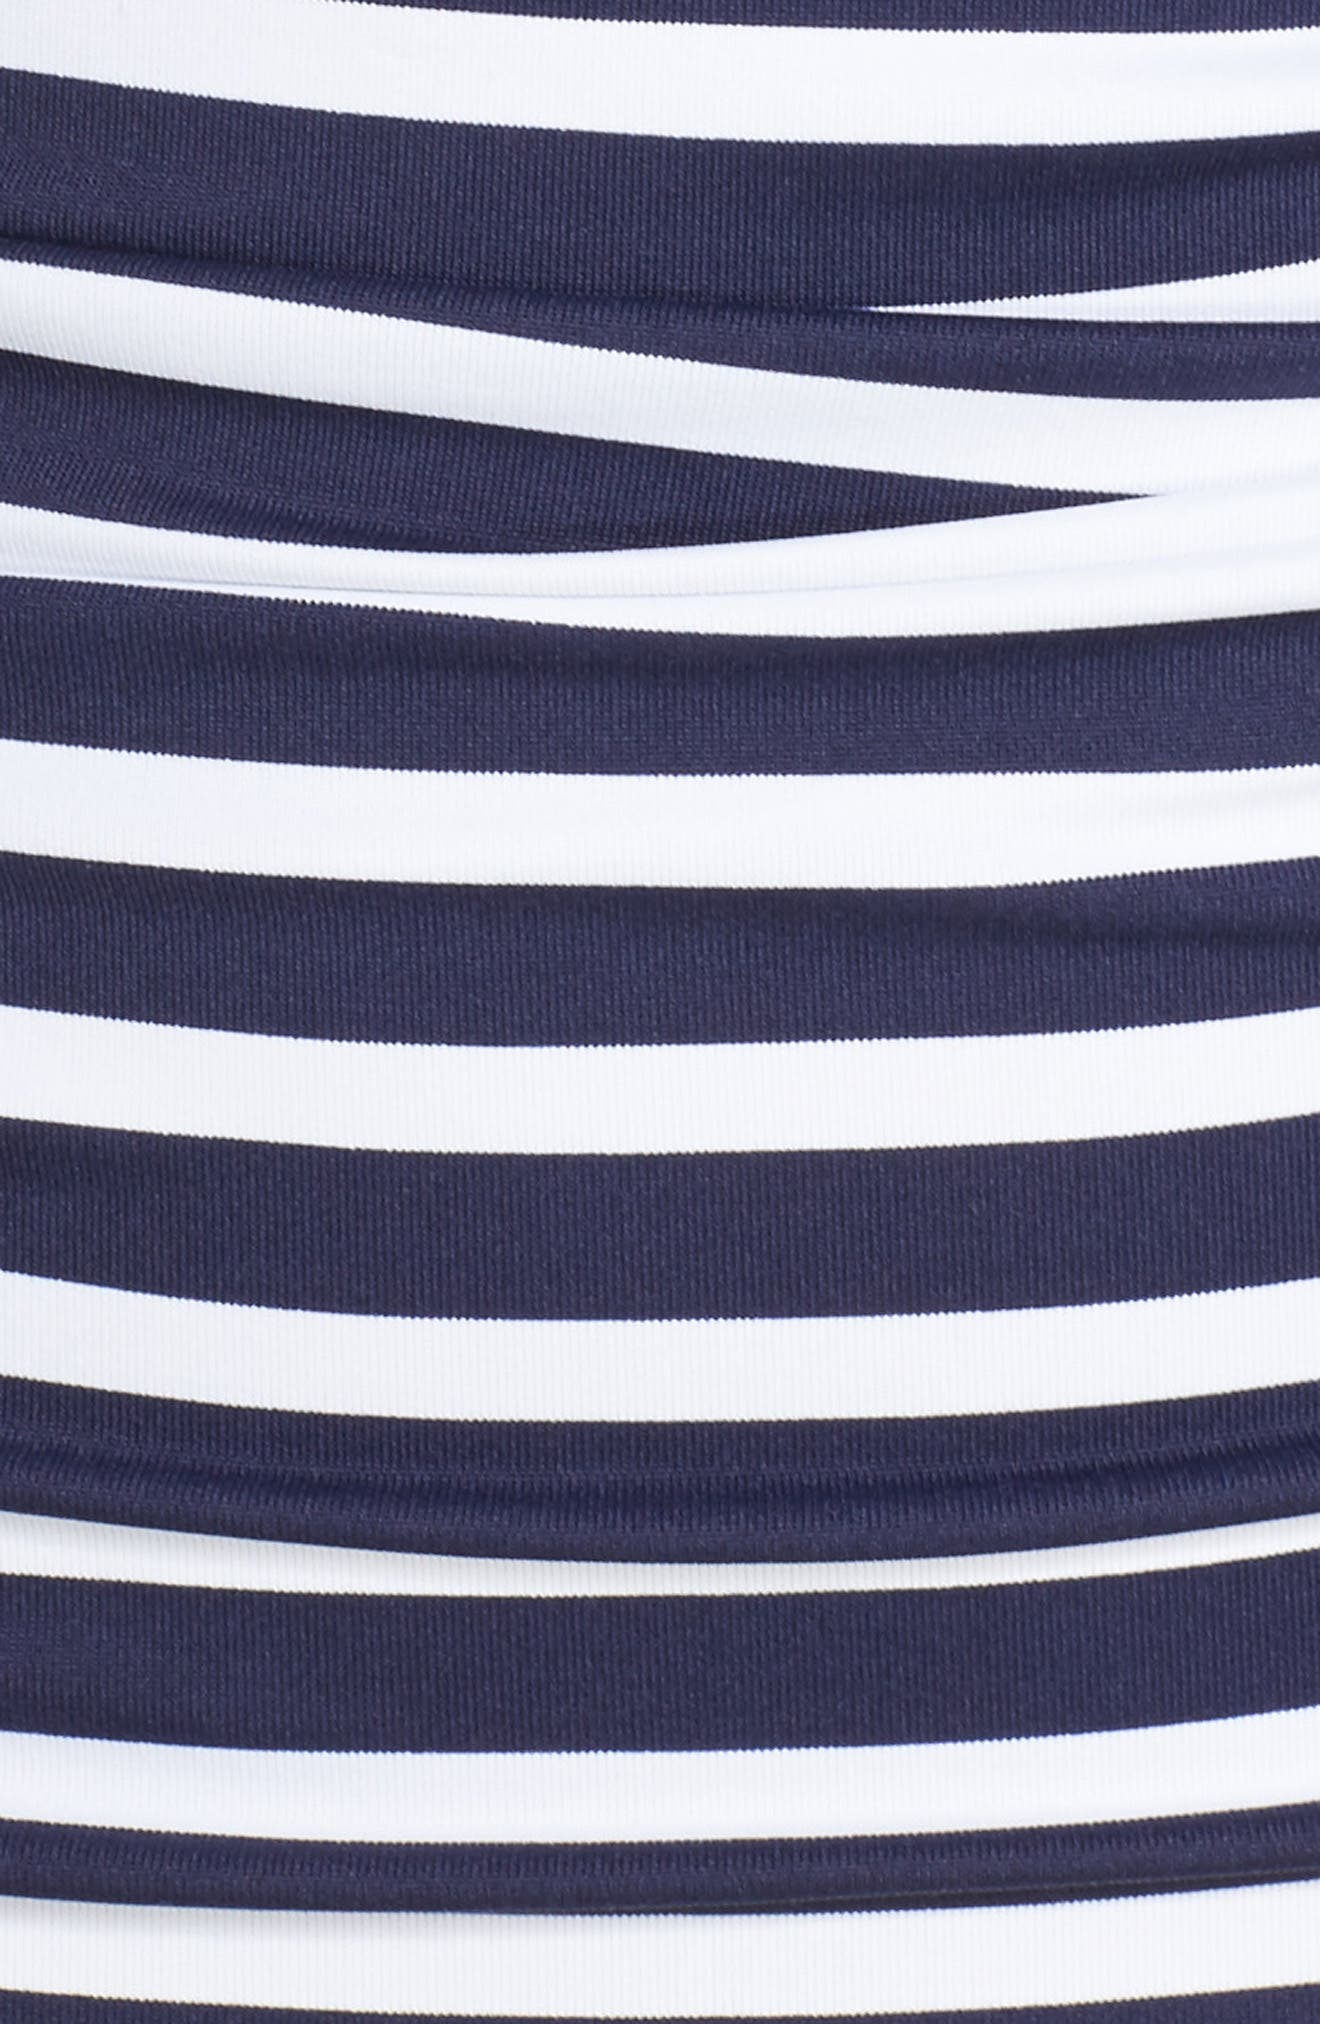 Breton Stripe Tankini Top,                             Alternate thumbnail 5, color,                             Mare Navy/ White